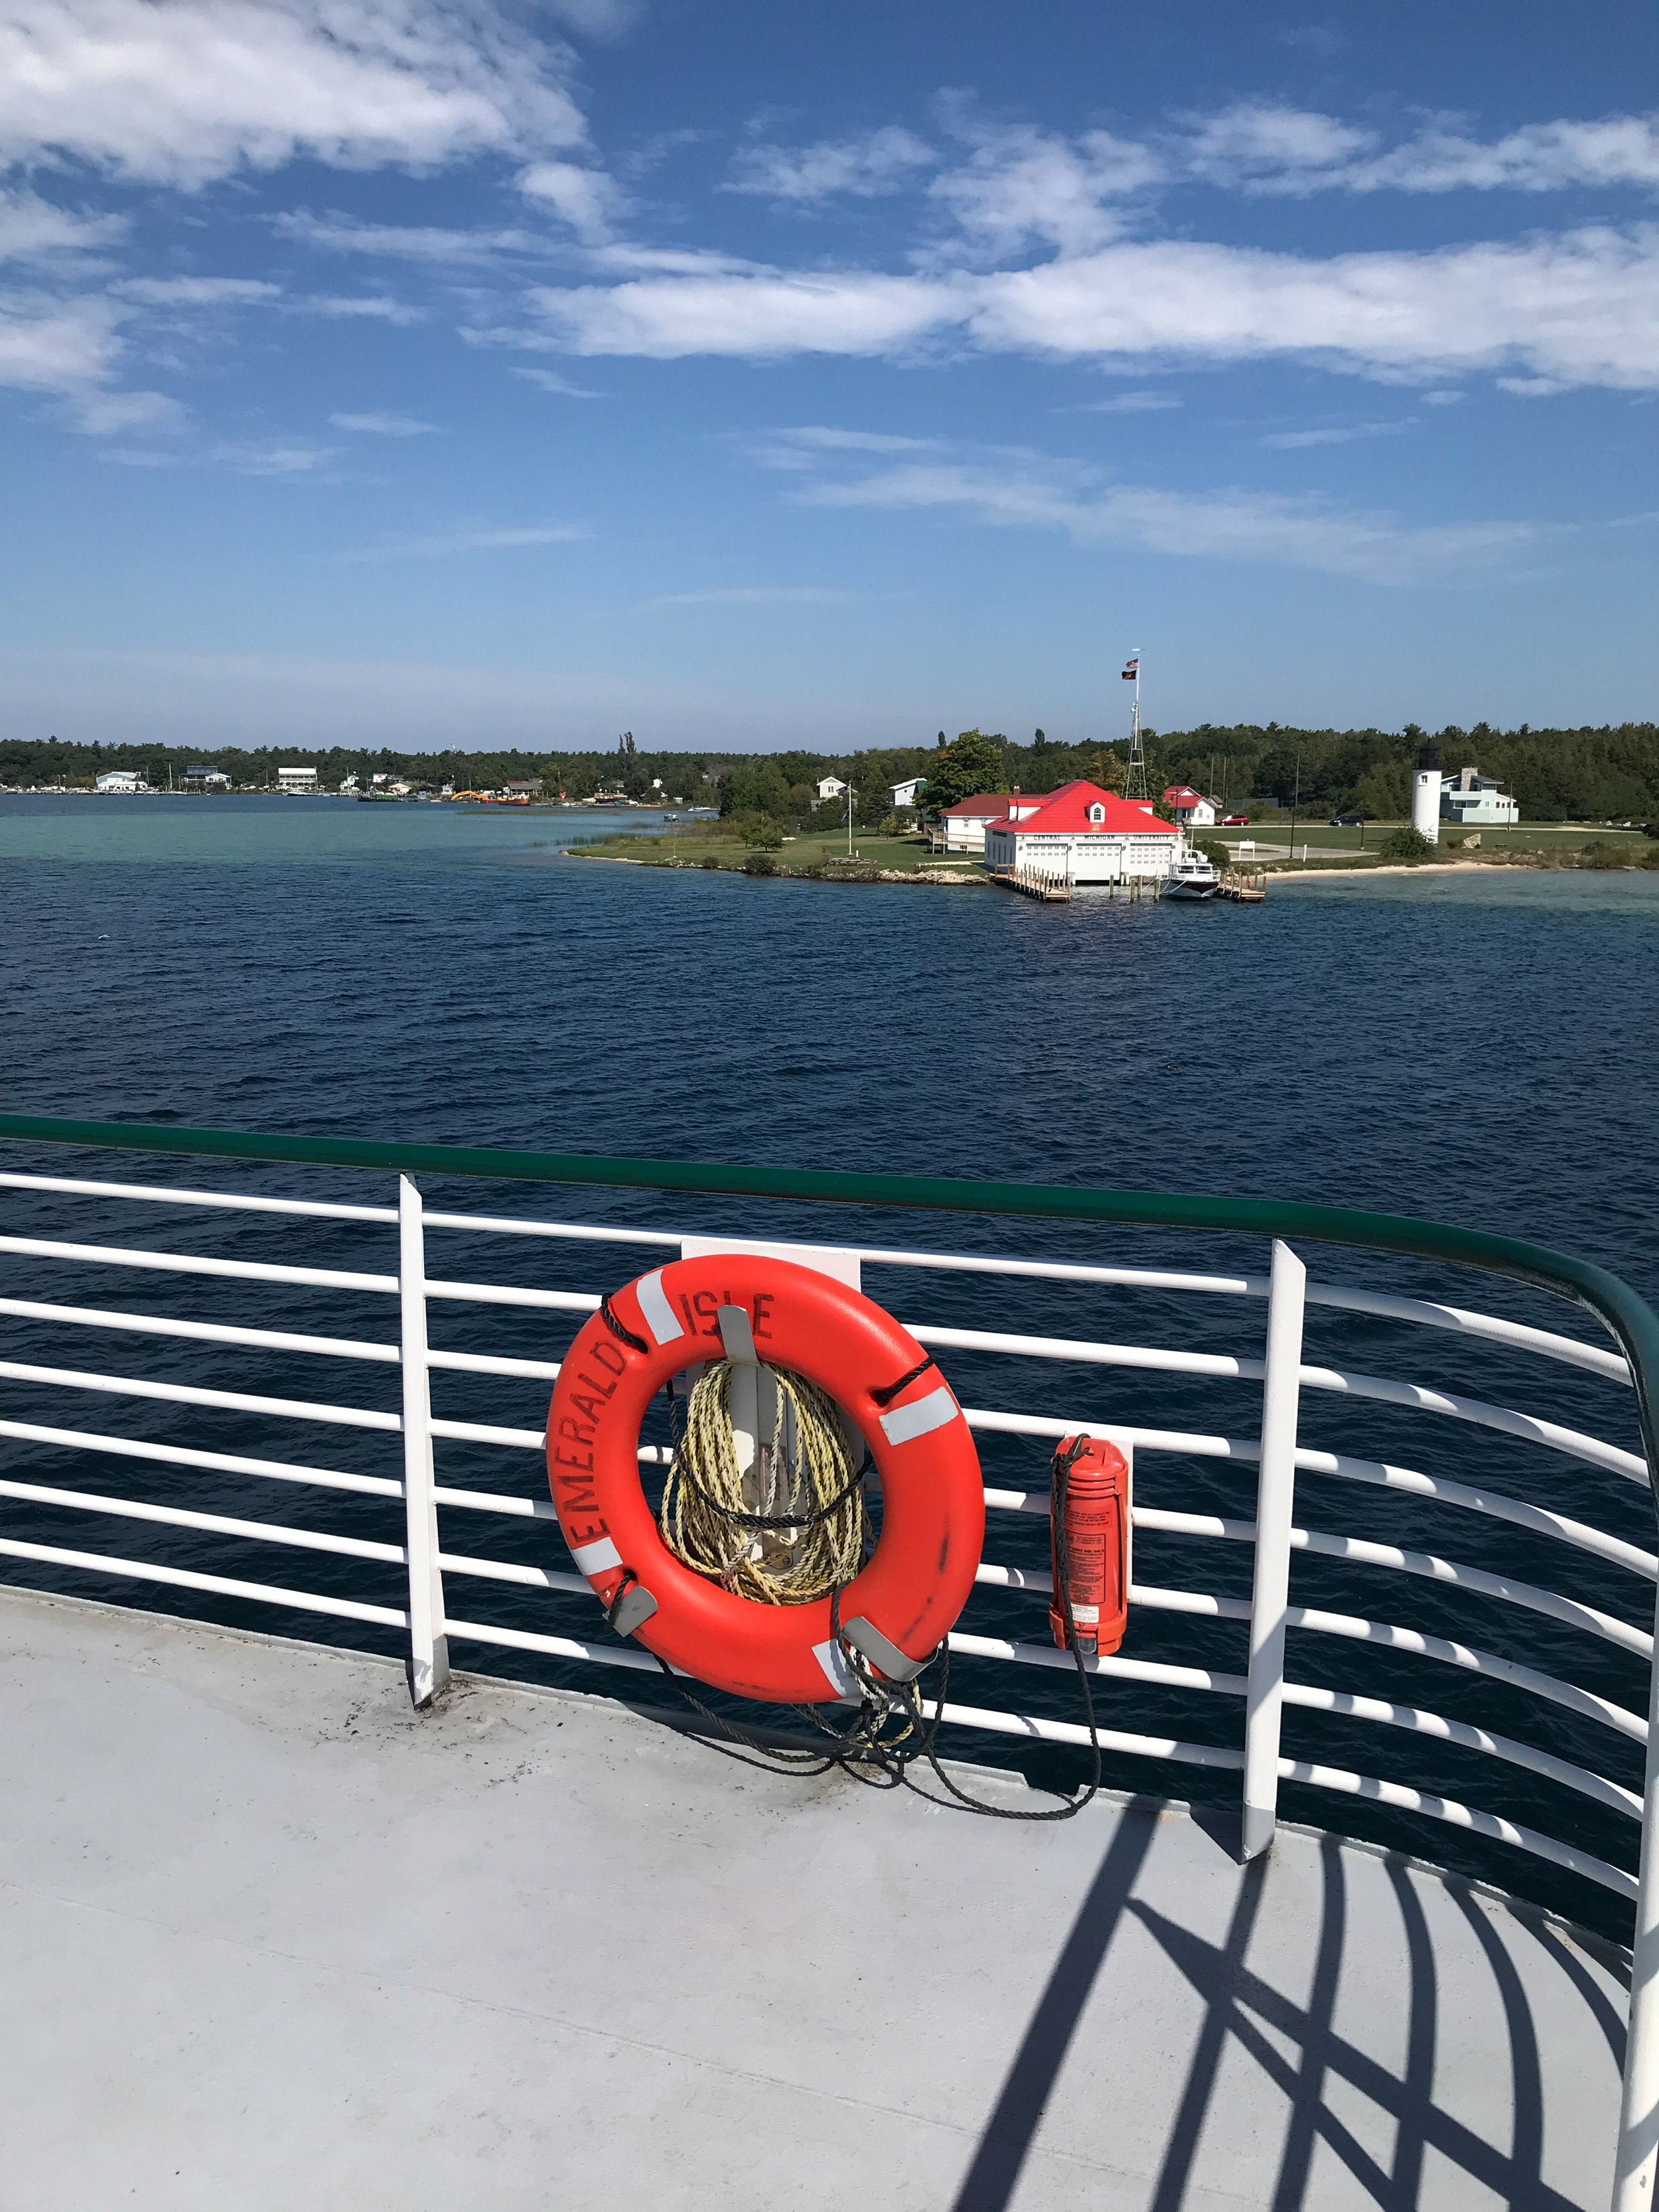 On the Ferry from Charlevoix Michigan Arriving at Beaver Island